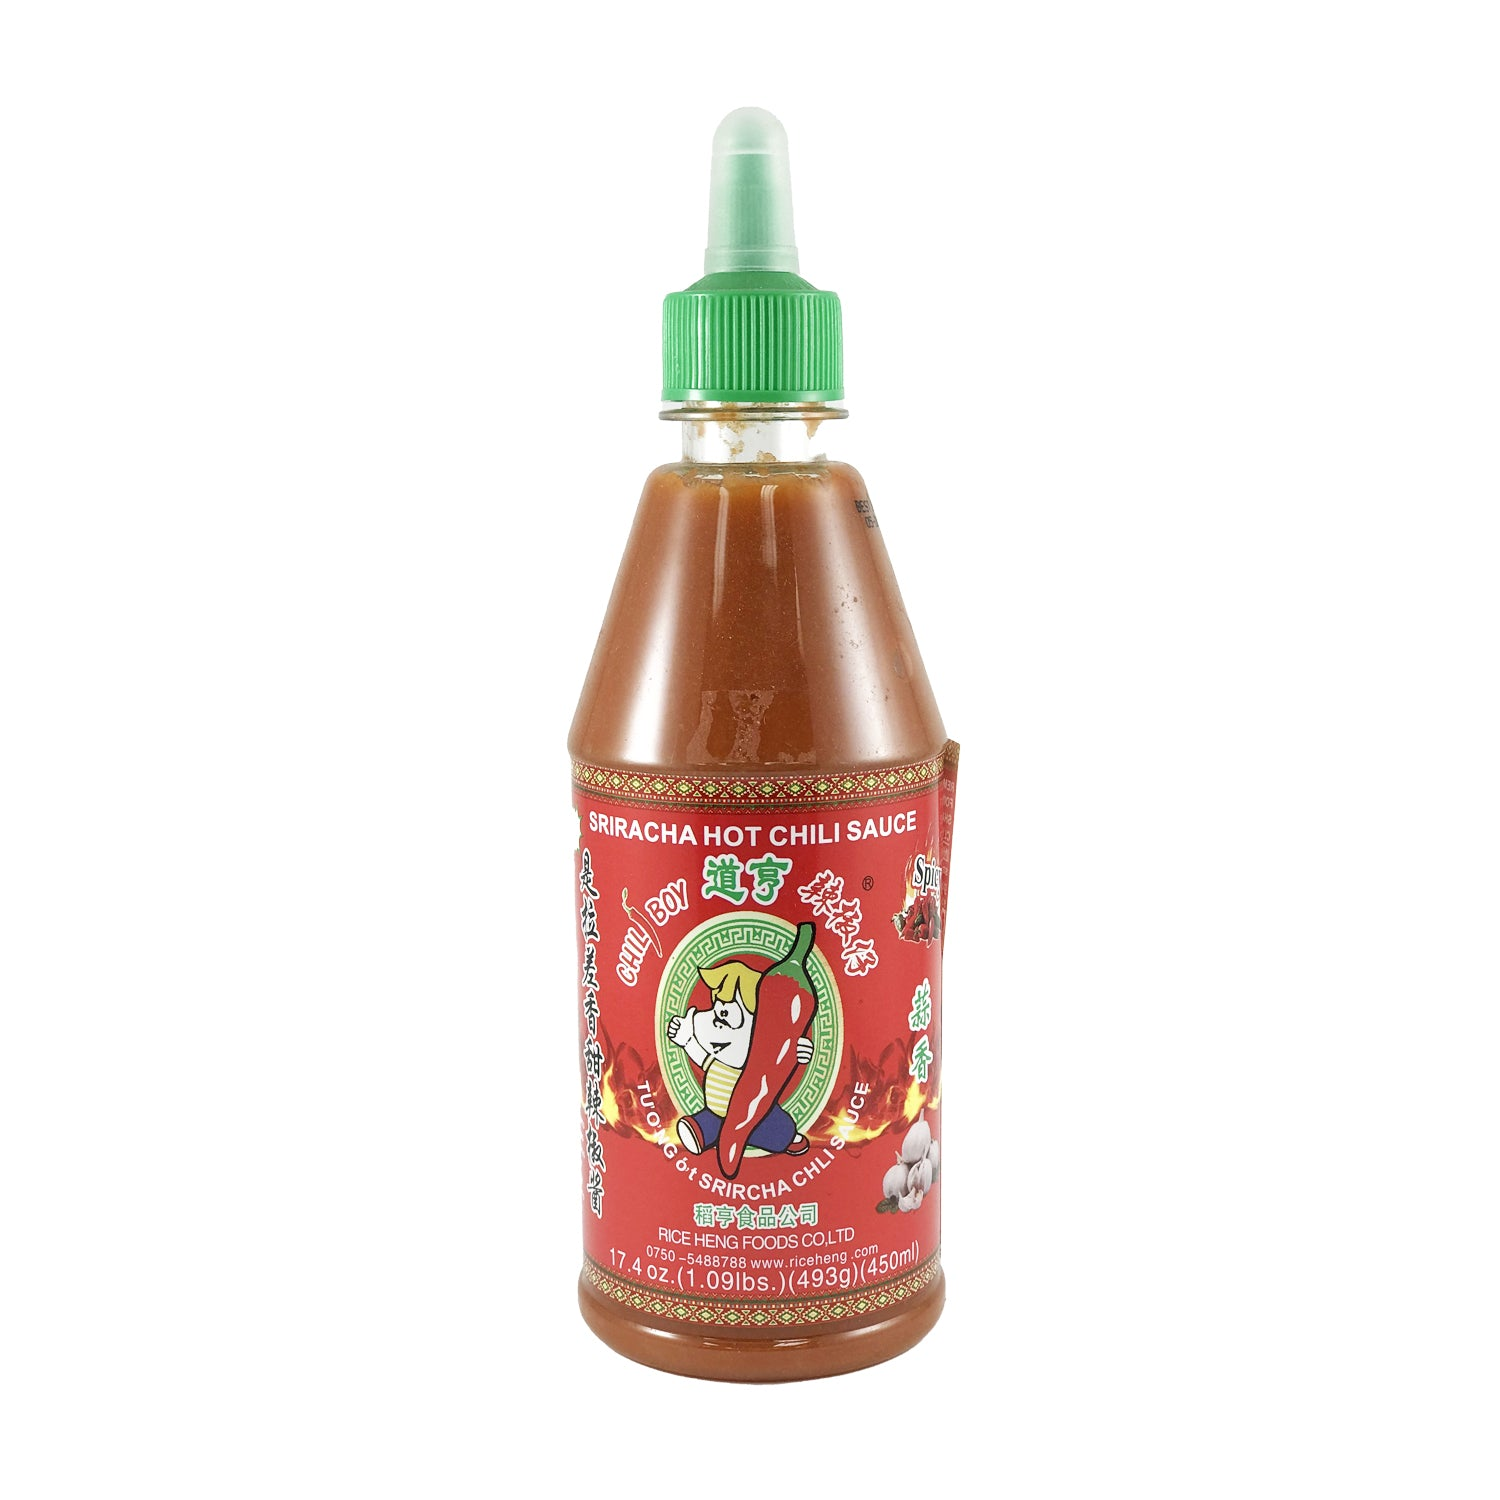 Sriracha Hot Chili Sauce 17.4oz